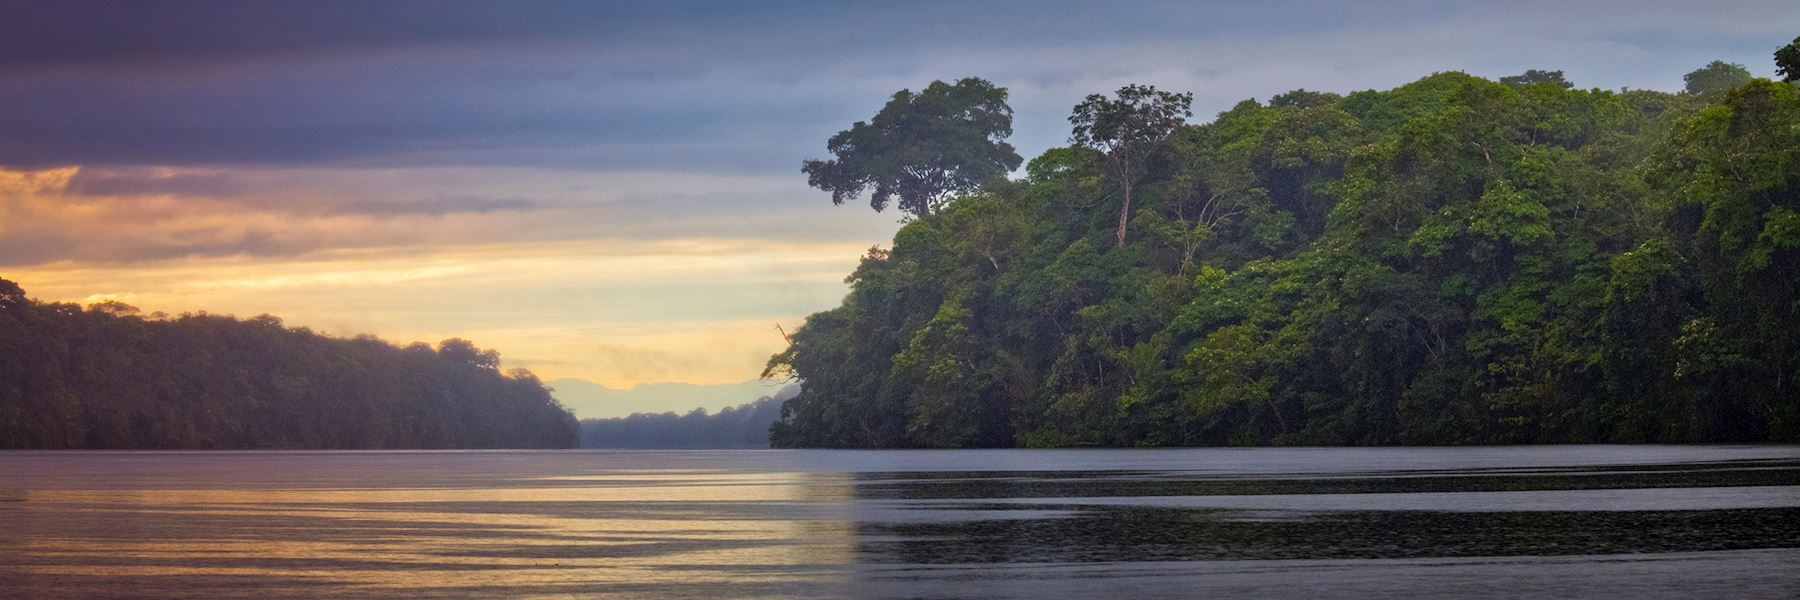 Tortuguero & the Caribbean Coast, Costa Rica